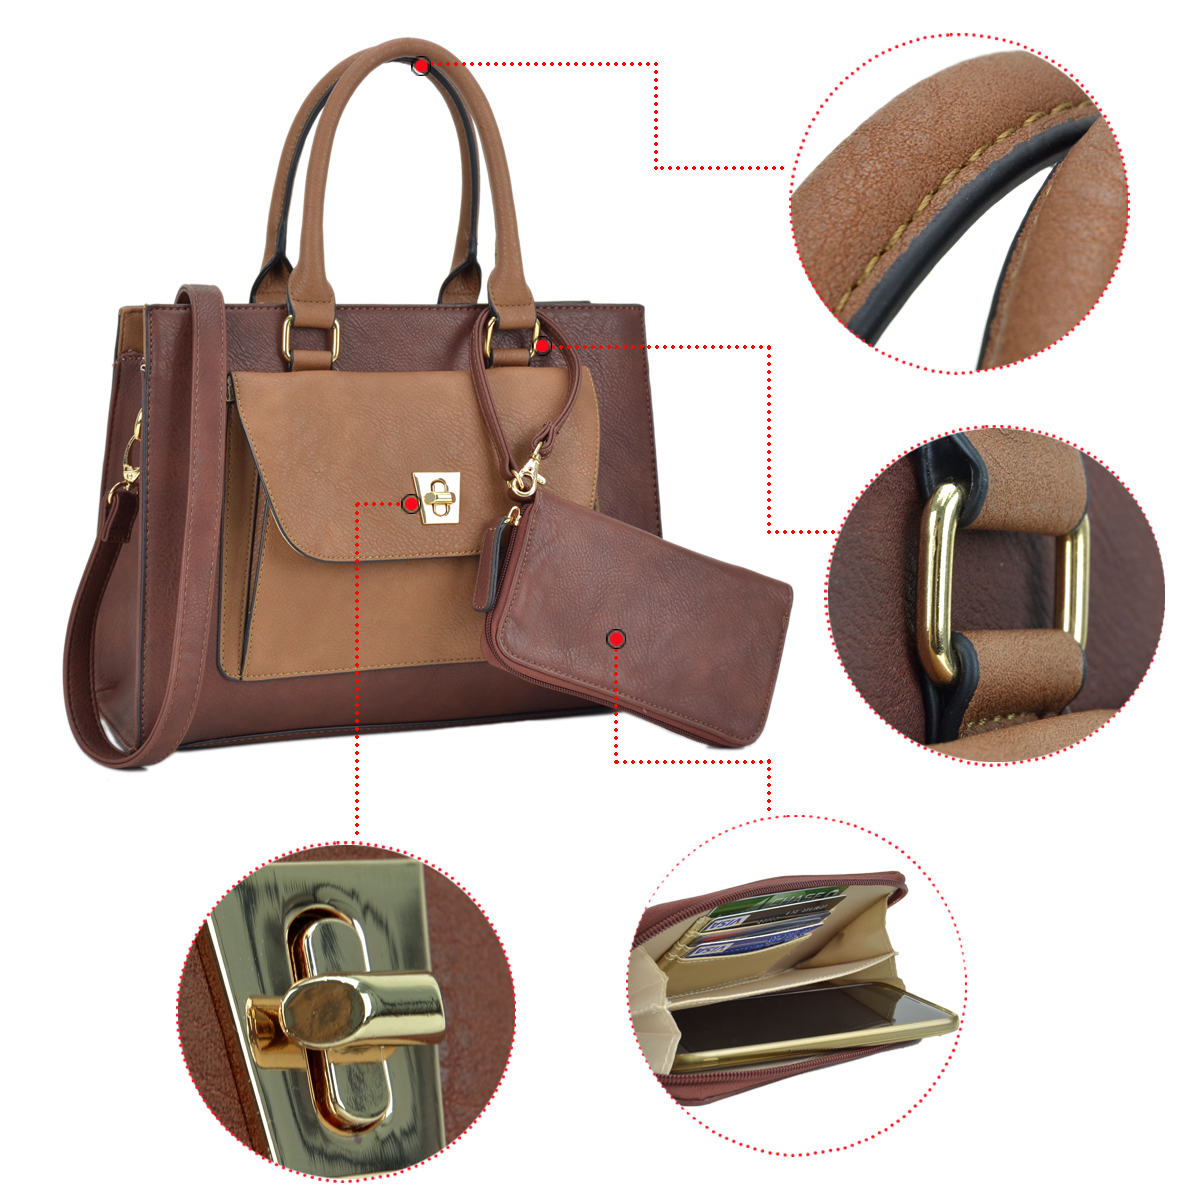 Dasein Faux Leather Satchel with Exterior Front Twist Lock Pocket and Matching Wallet